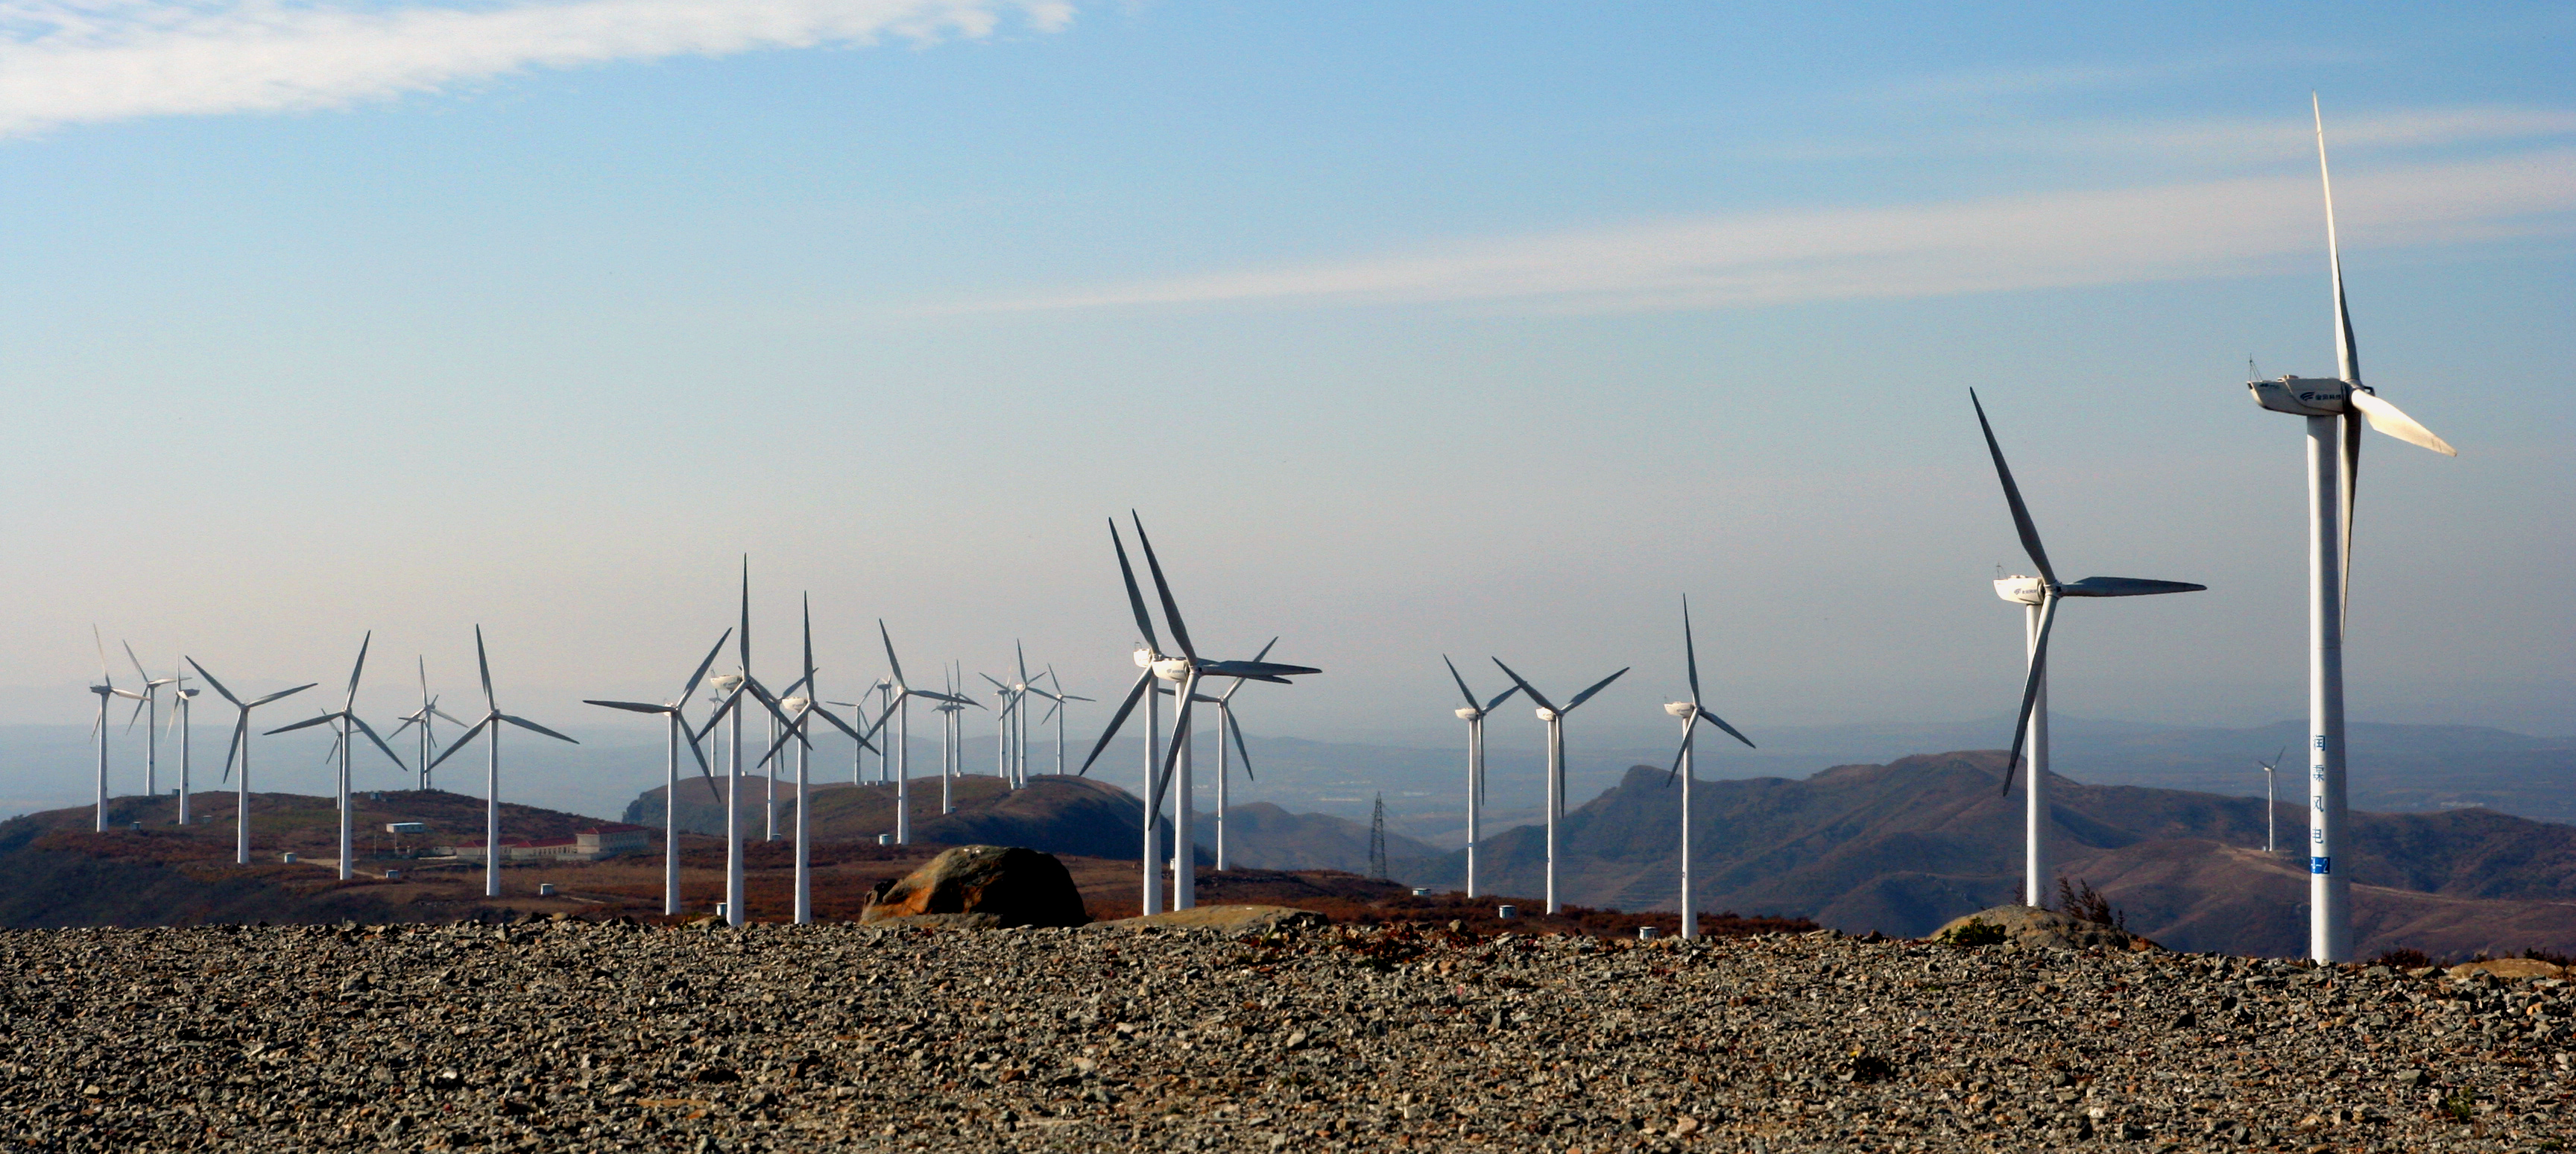 Mulan Wind Farm, Heilongiang, China. Credit: © Land Rover Our Planet | Flickr.com